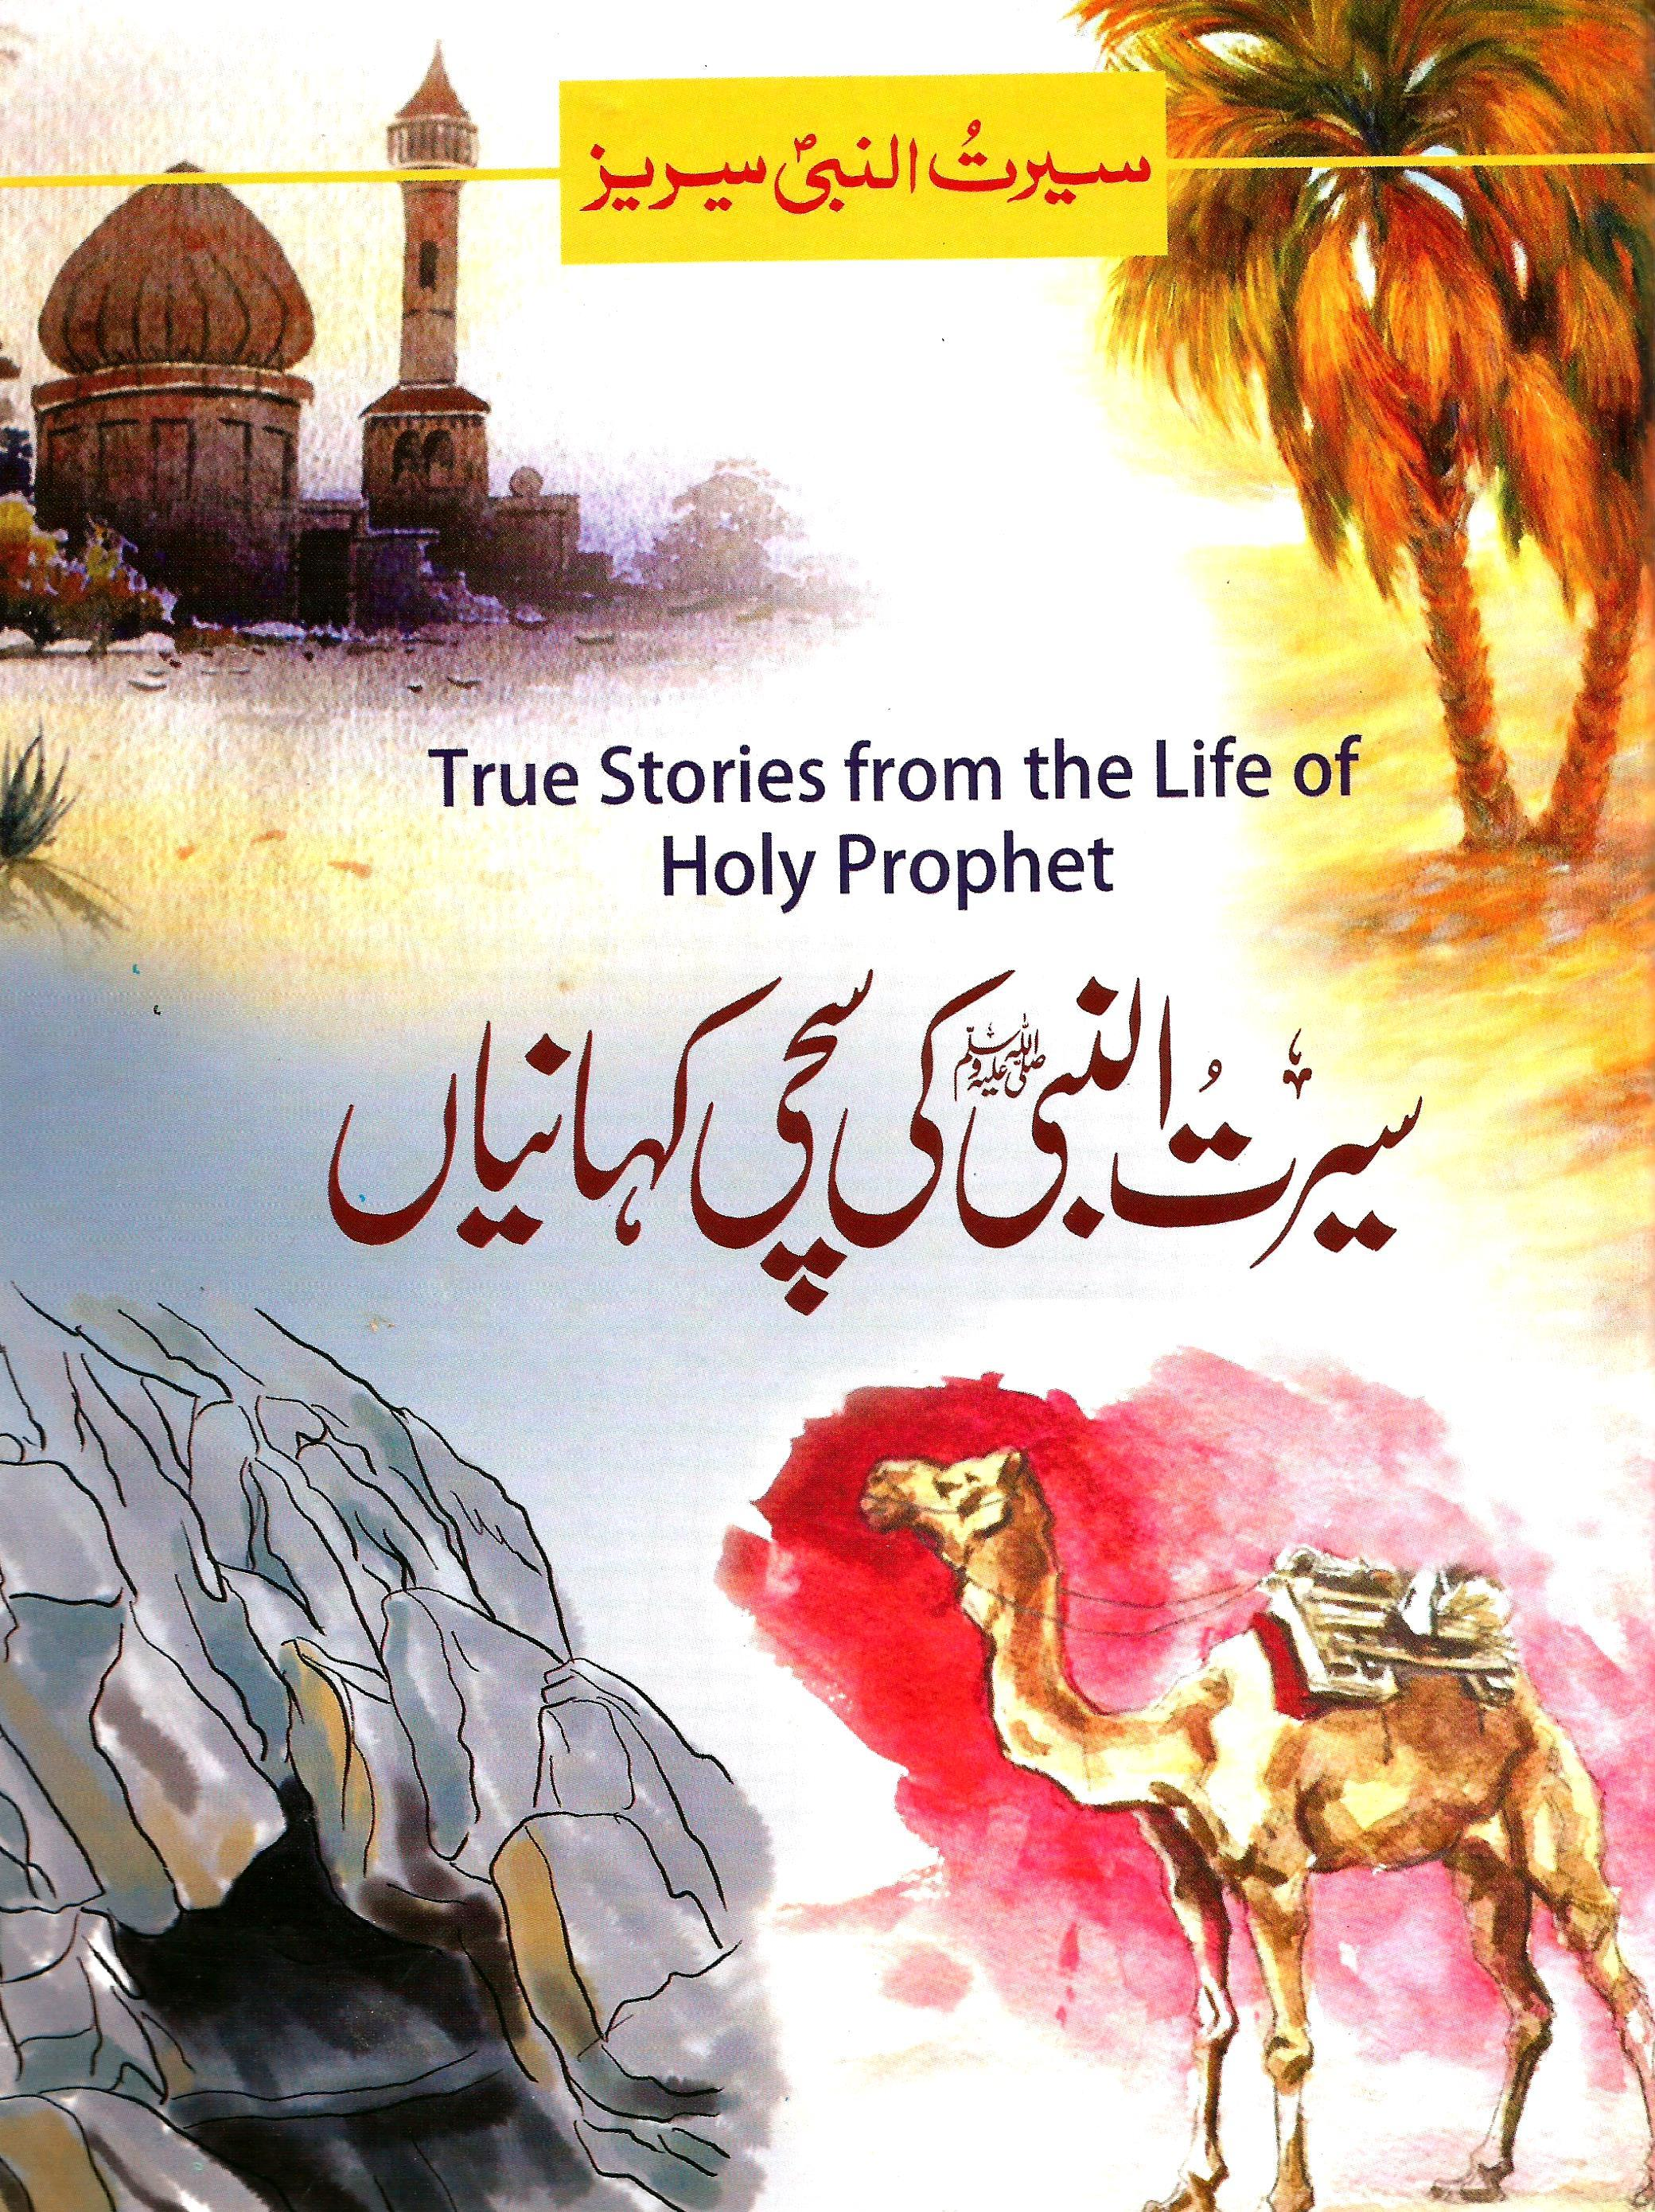 True Stories From The Life Of Holy Prophet - Urdu - Large Size